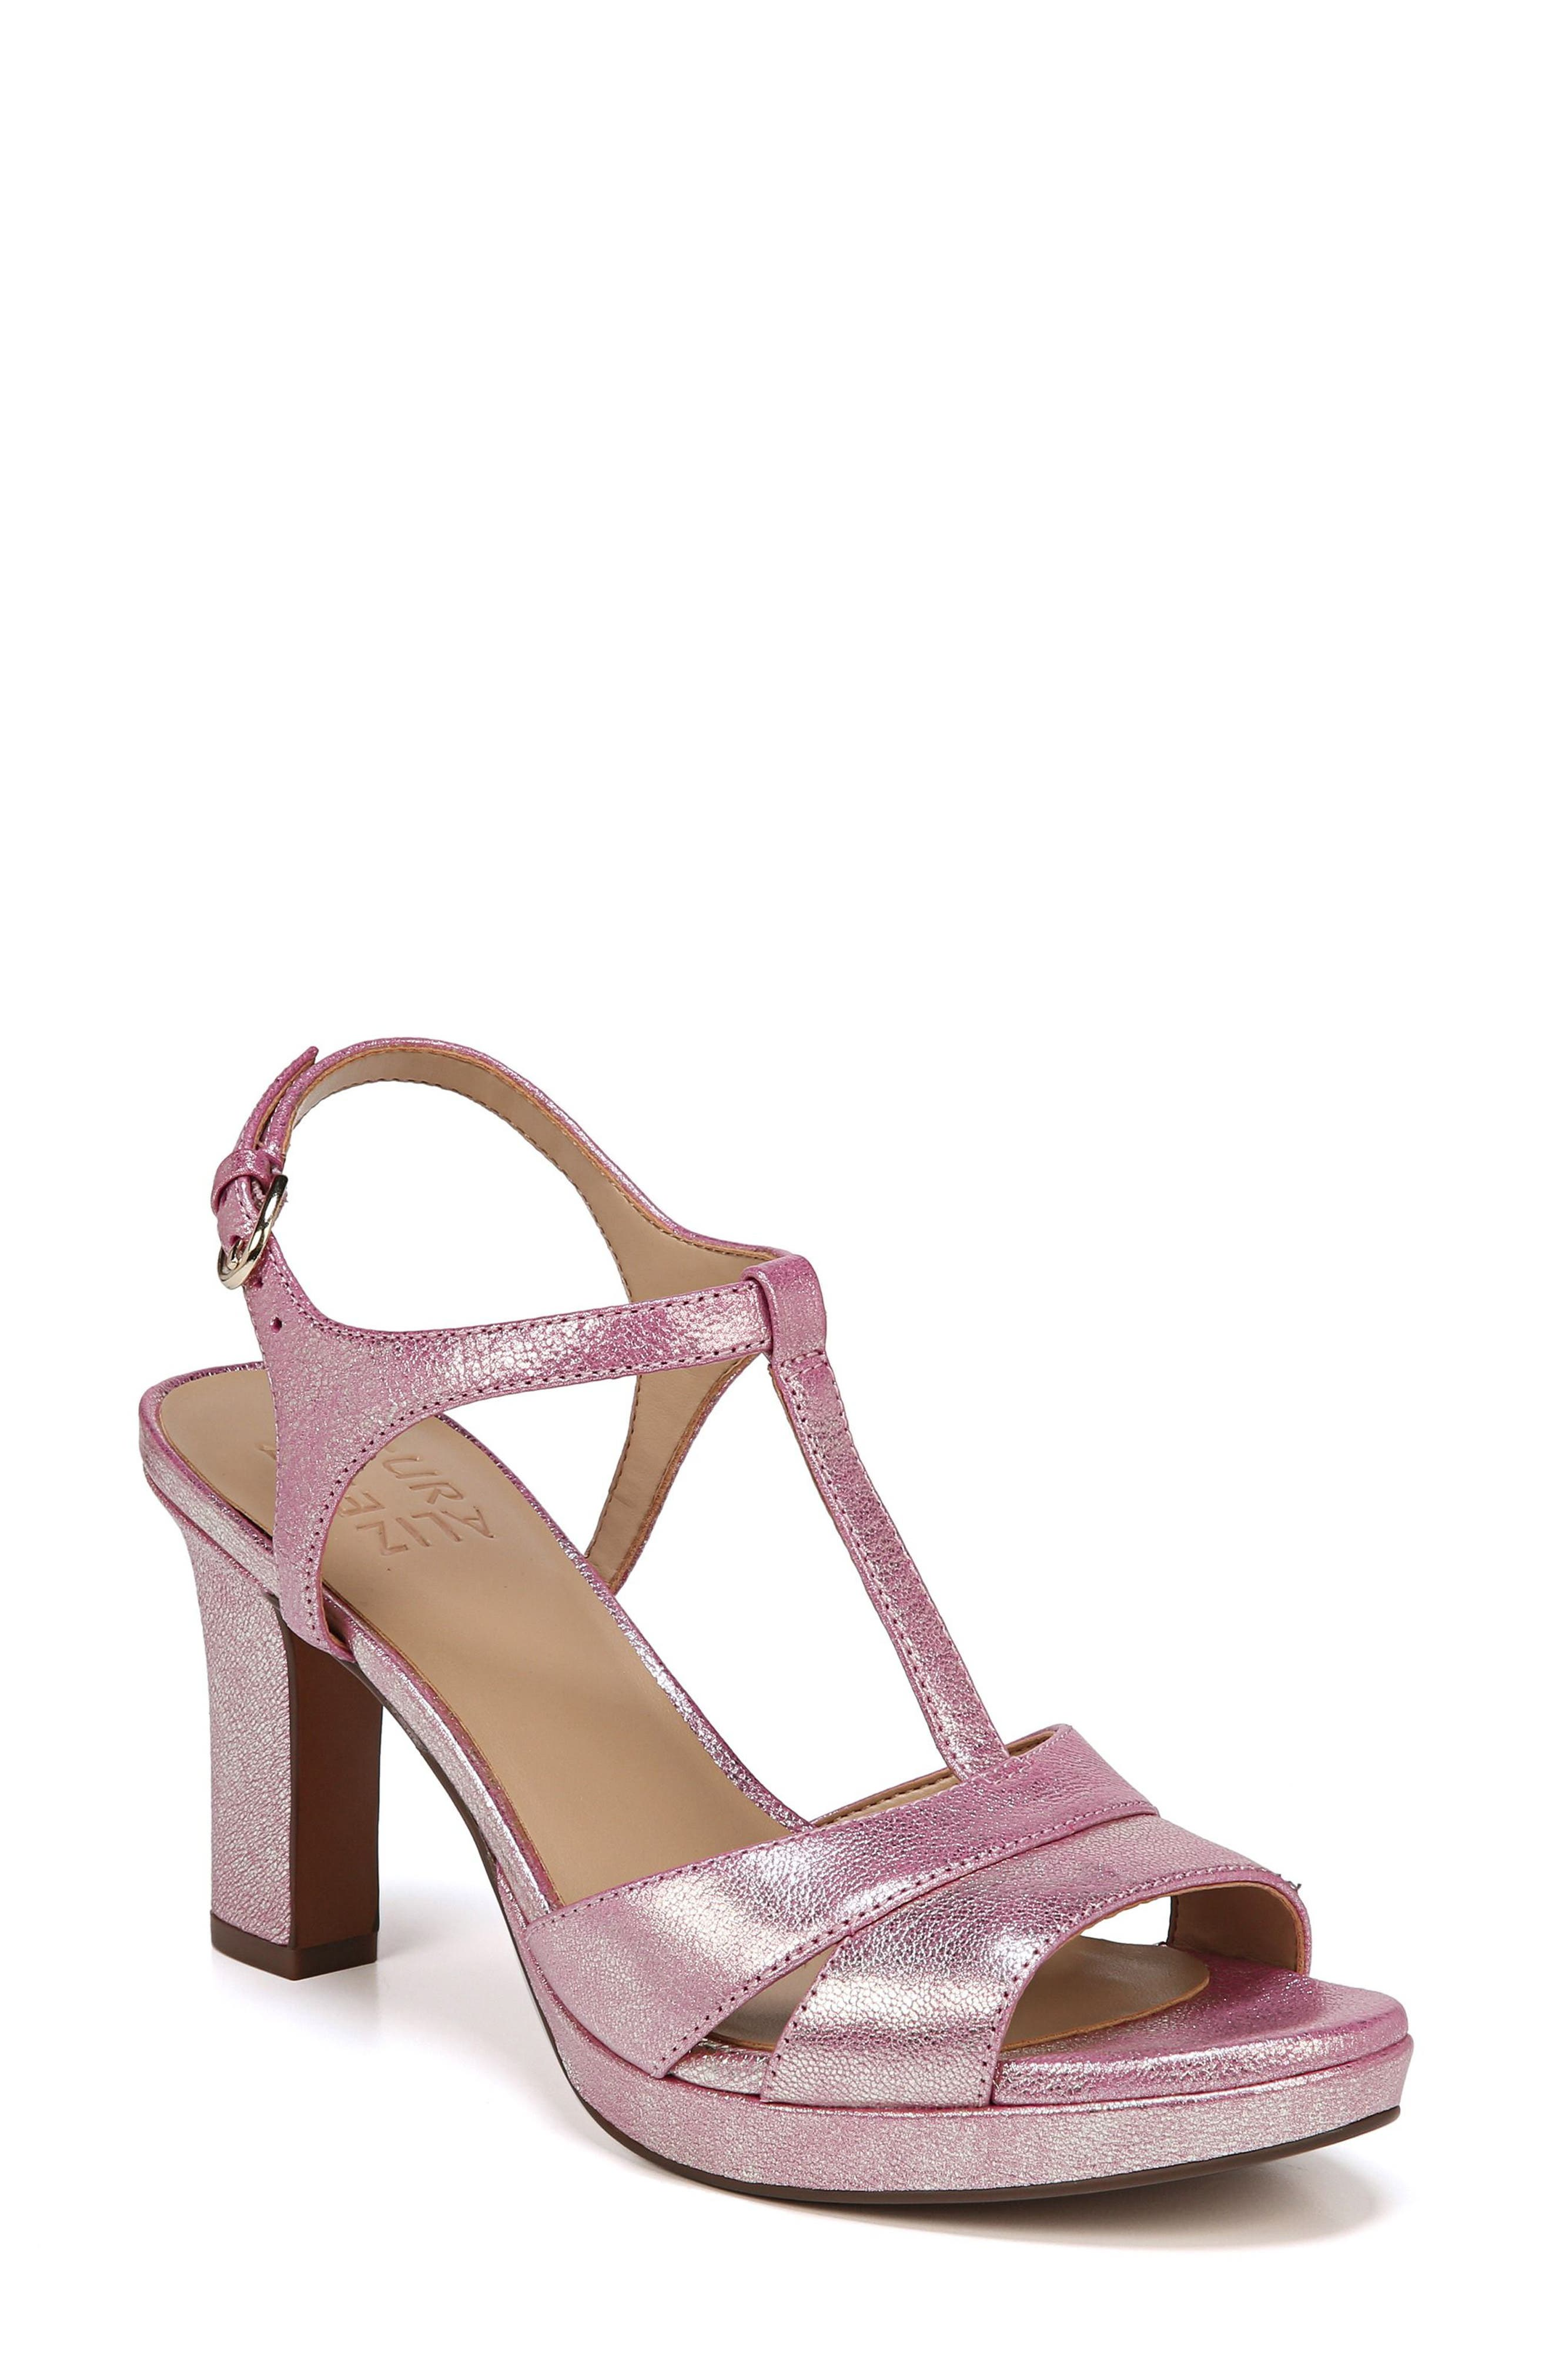 Finn Sandal,                         Main,                         color, Pink Leather